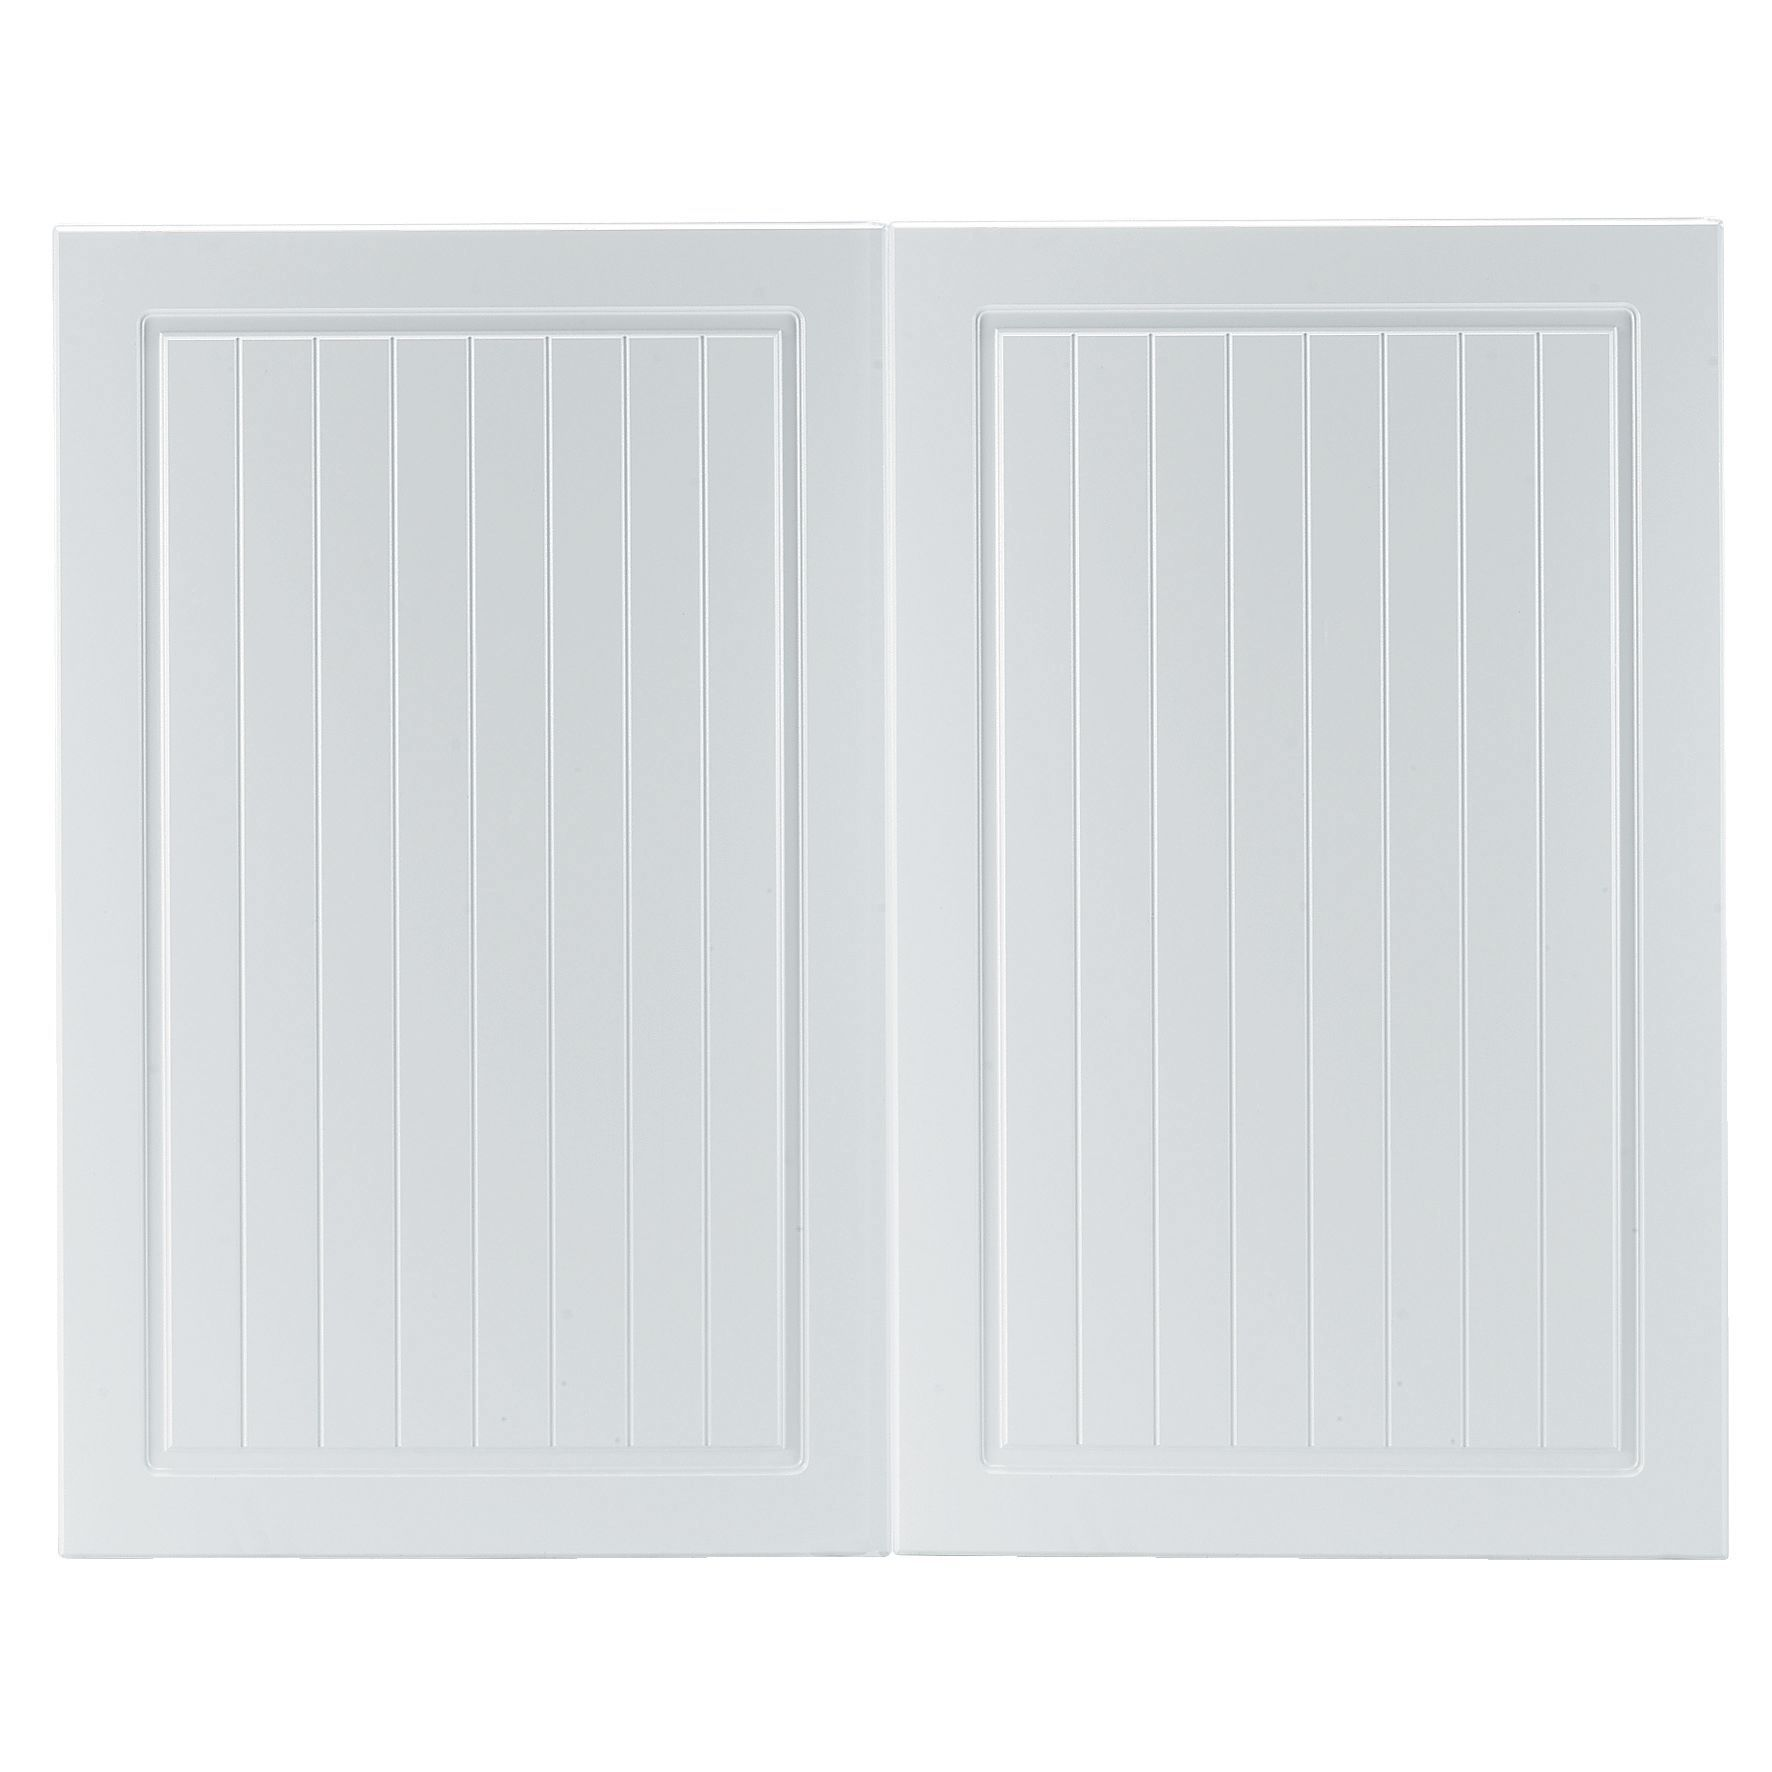 Bq It Kitchen Doors It Kitchens Chilton White Country Style Larder Door W600mm Set